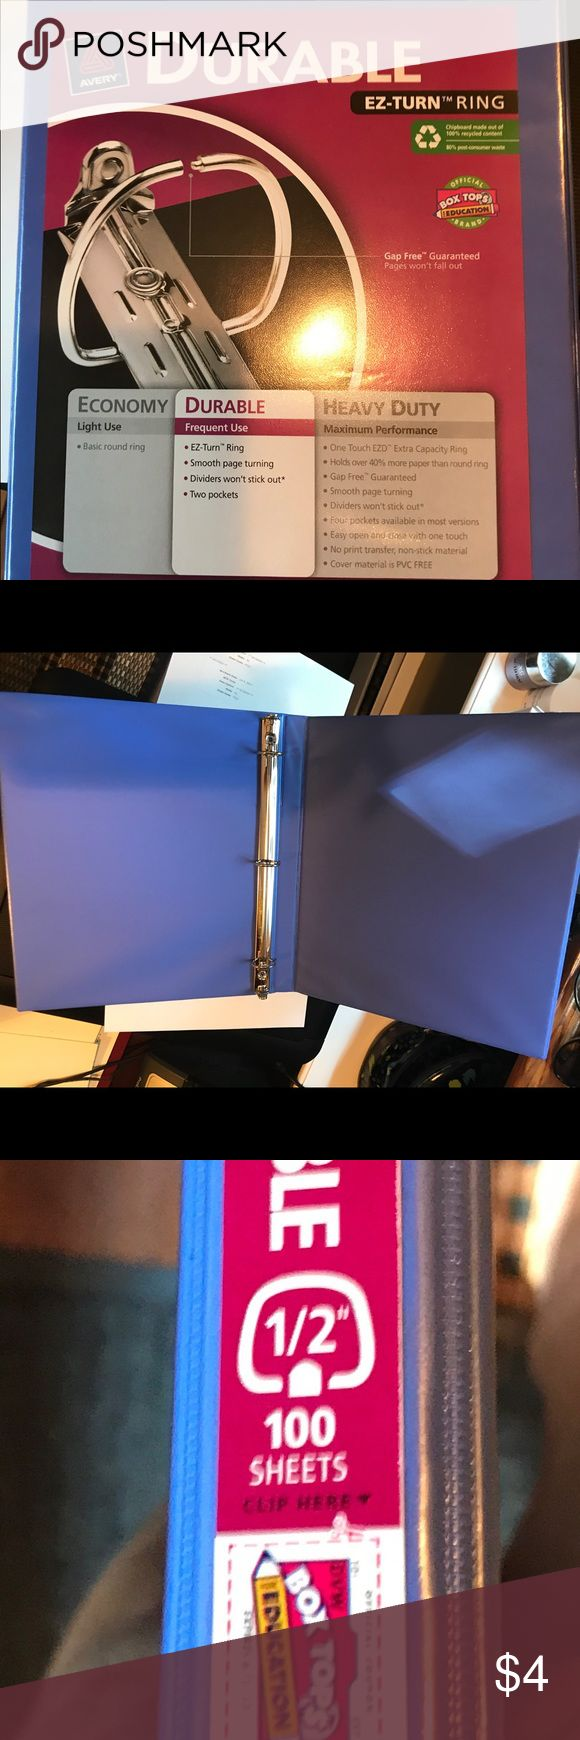 1/2 inch blue binder Sturdy blue binder. Never used. Two being sold together Other